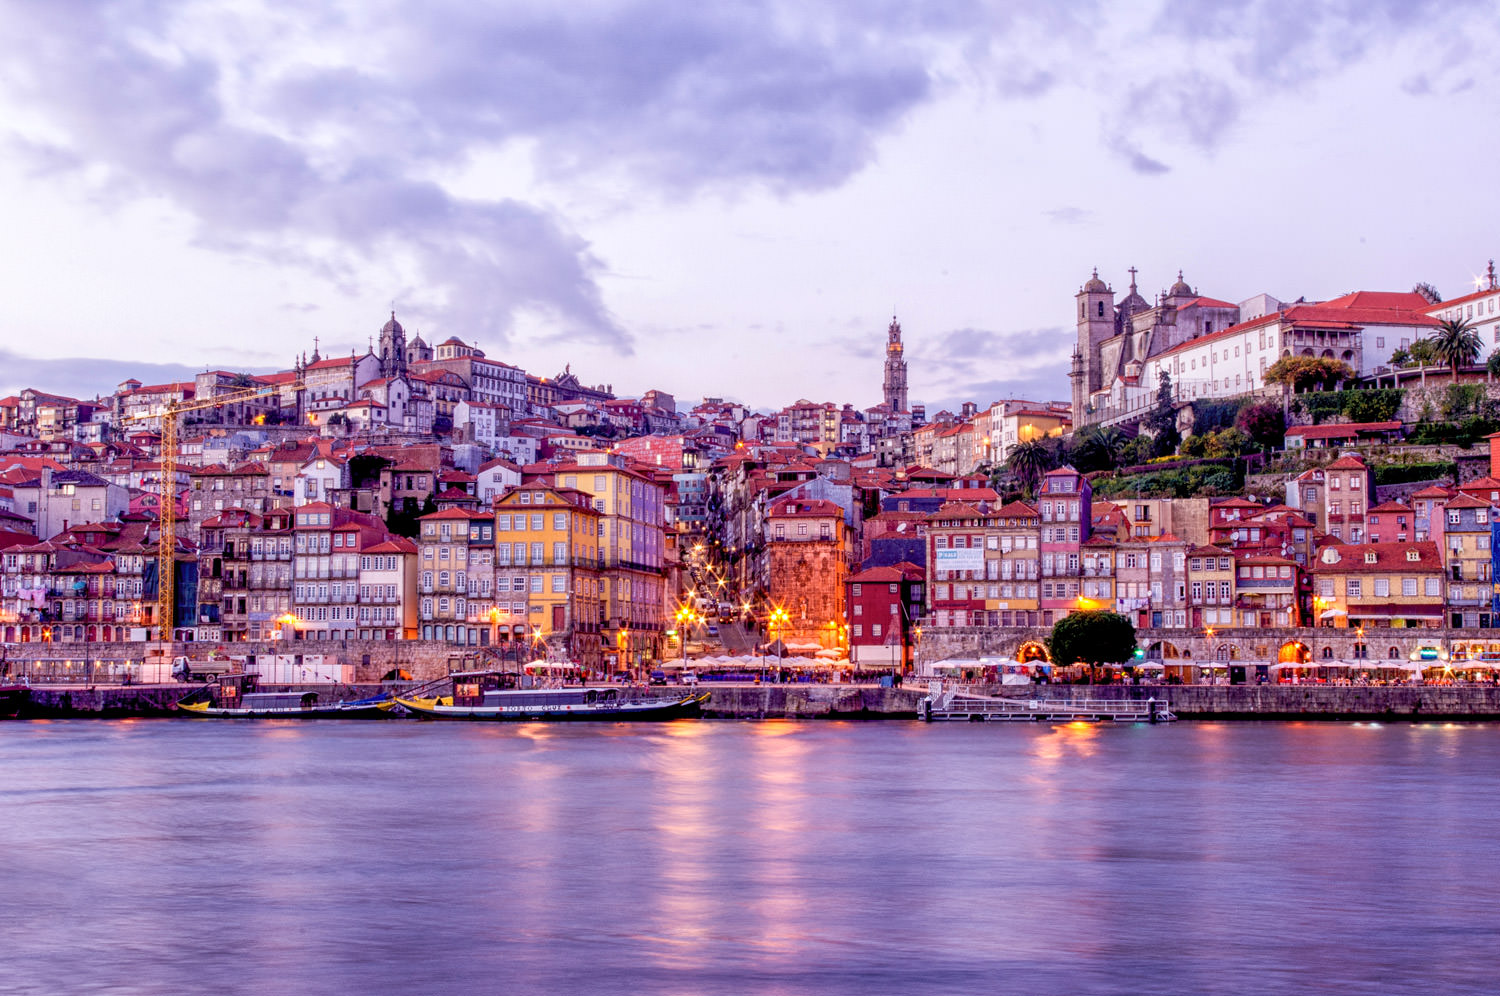 Porto travel guide for first-time visitors - Best Places to Visit in Europe - planningforeurope.com (4)